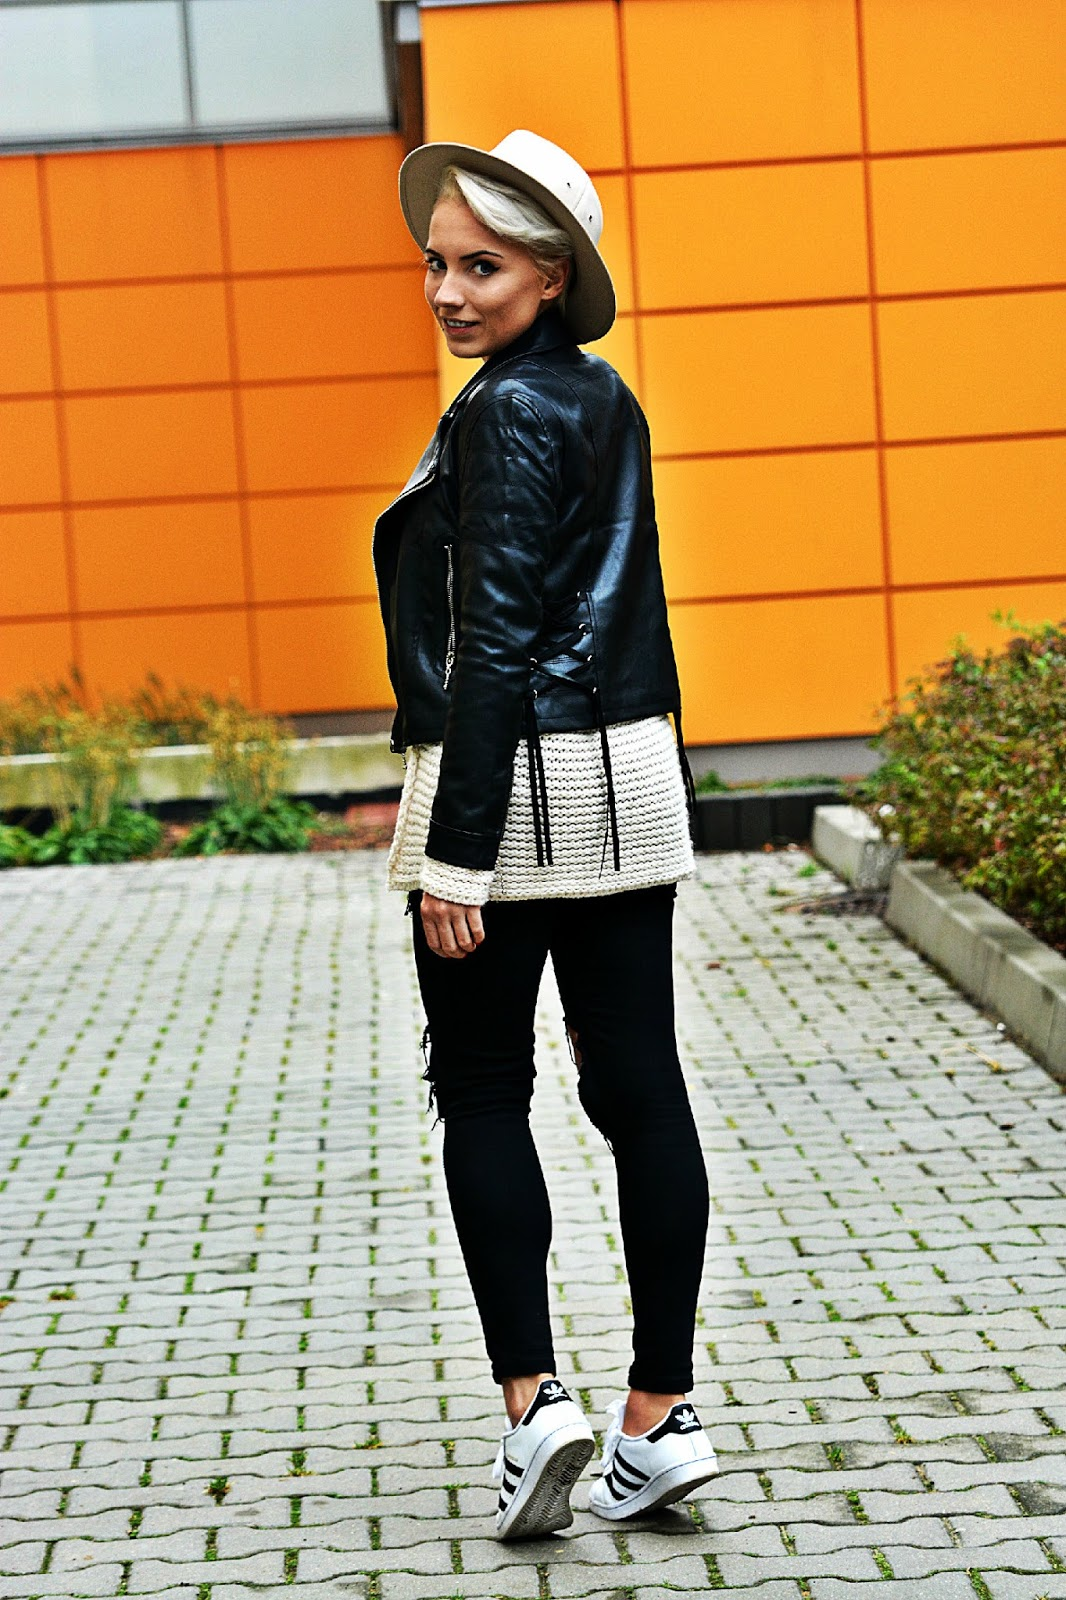 high_waist_pants_black_biker_jacket_beige_hat_5